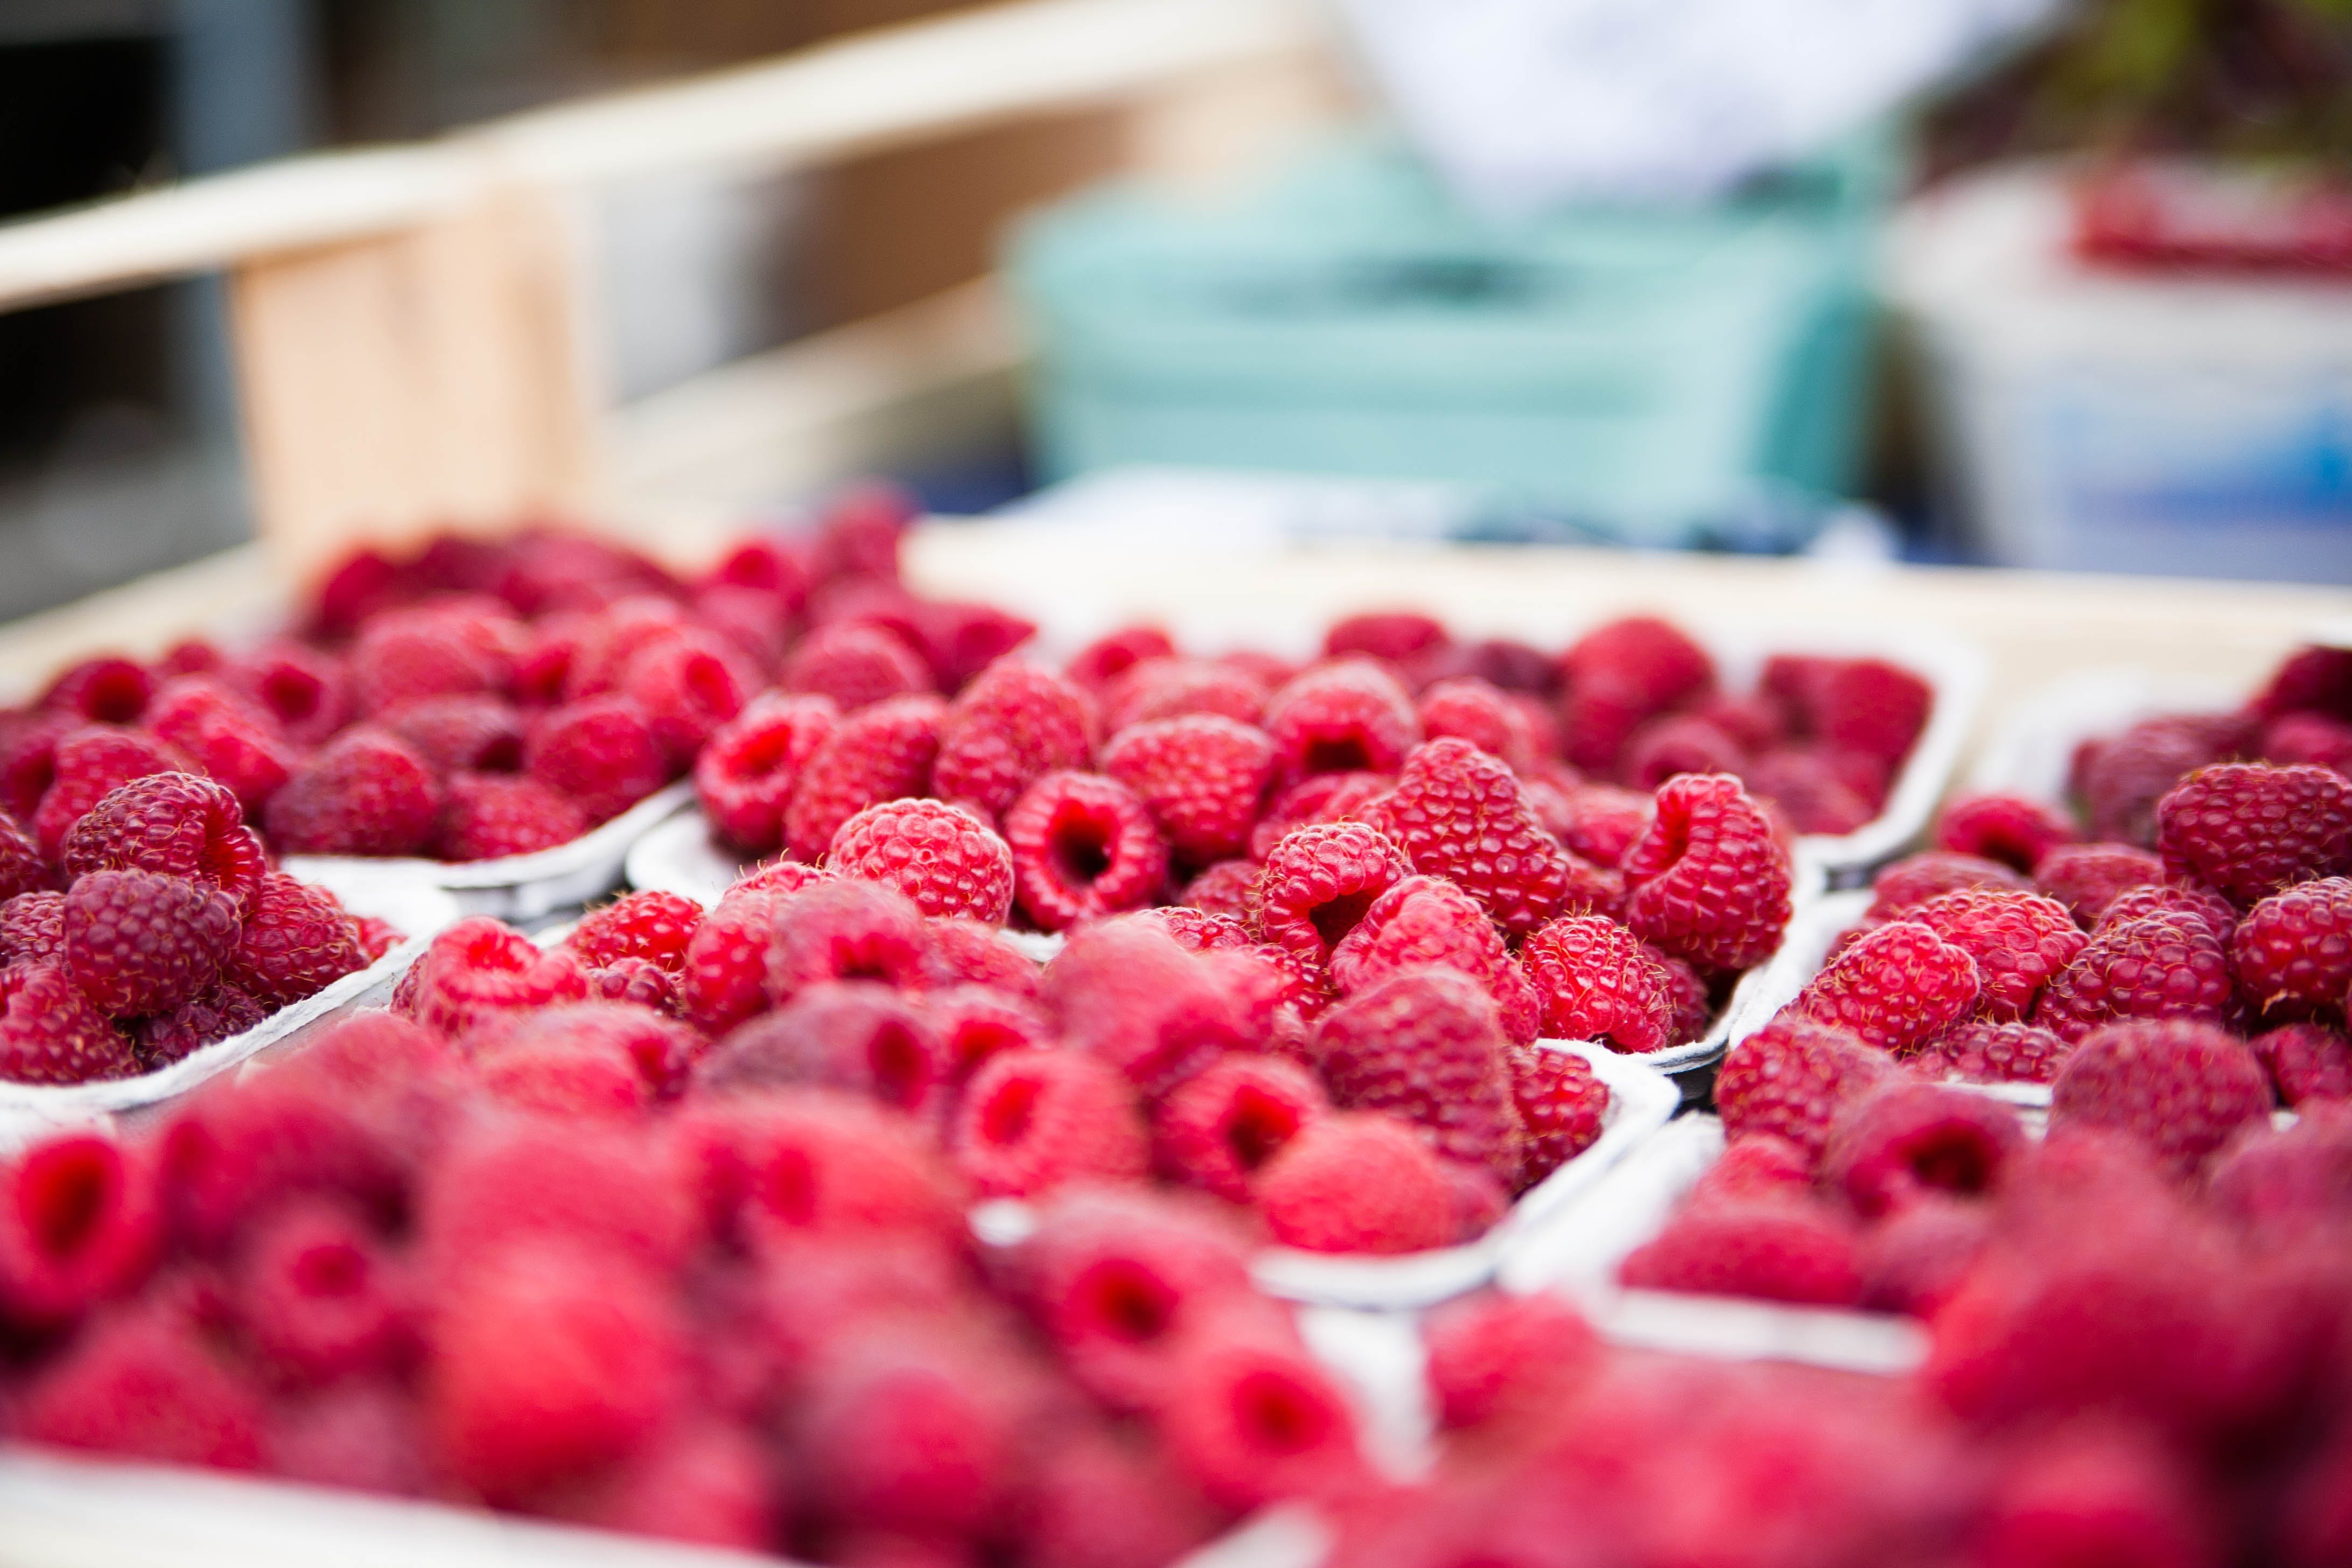 Red Raspberries on White Container